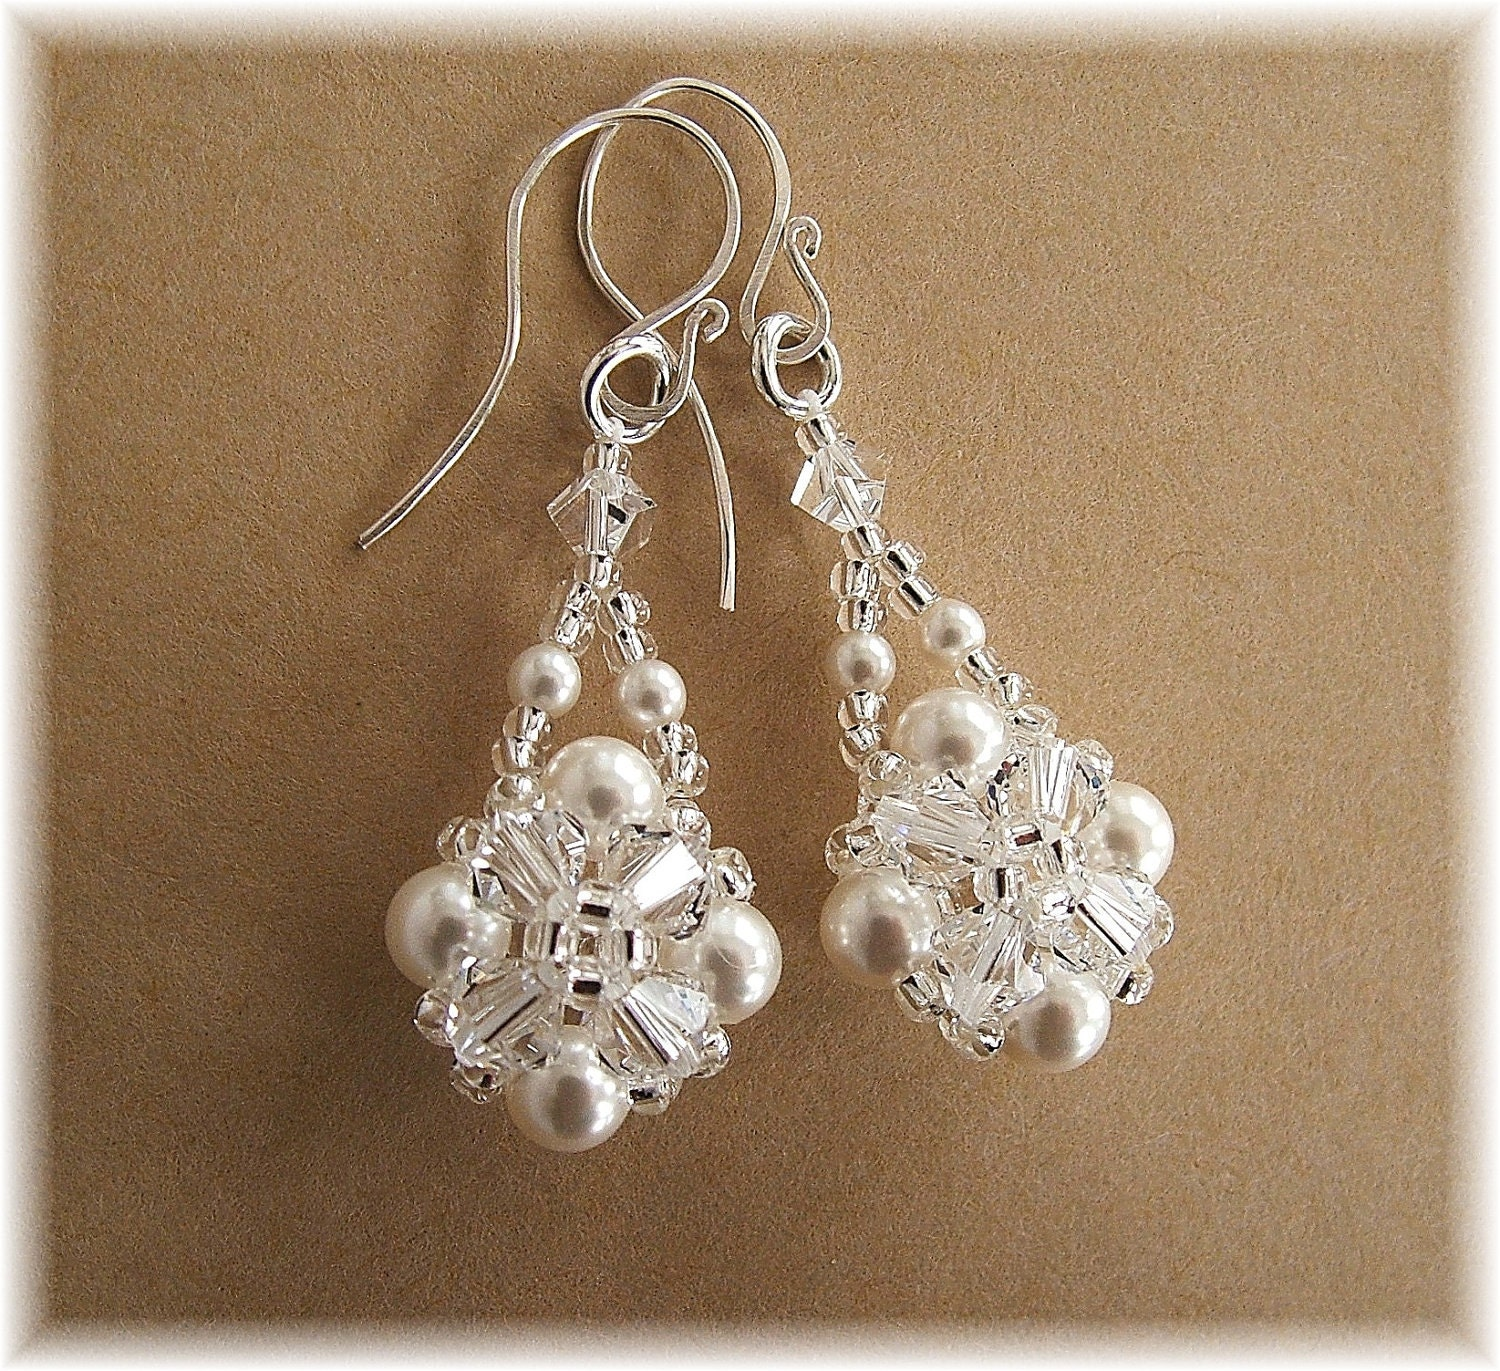 Crystal Crowns Bridal Earrings Clear Crystal and by Handwired from etsy.com